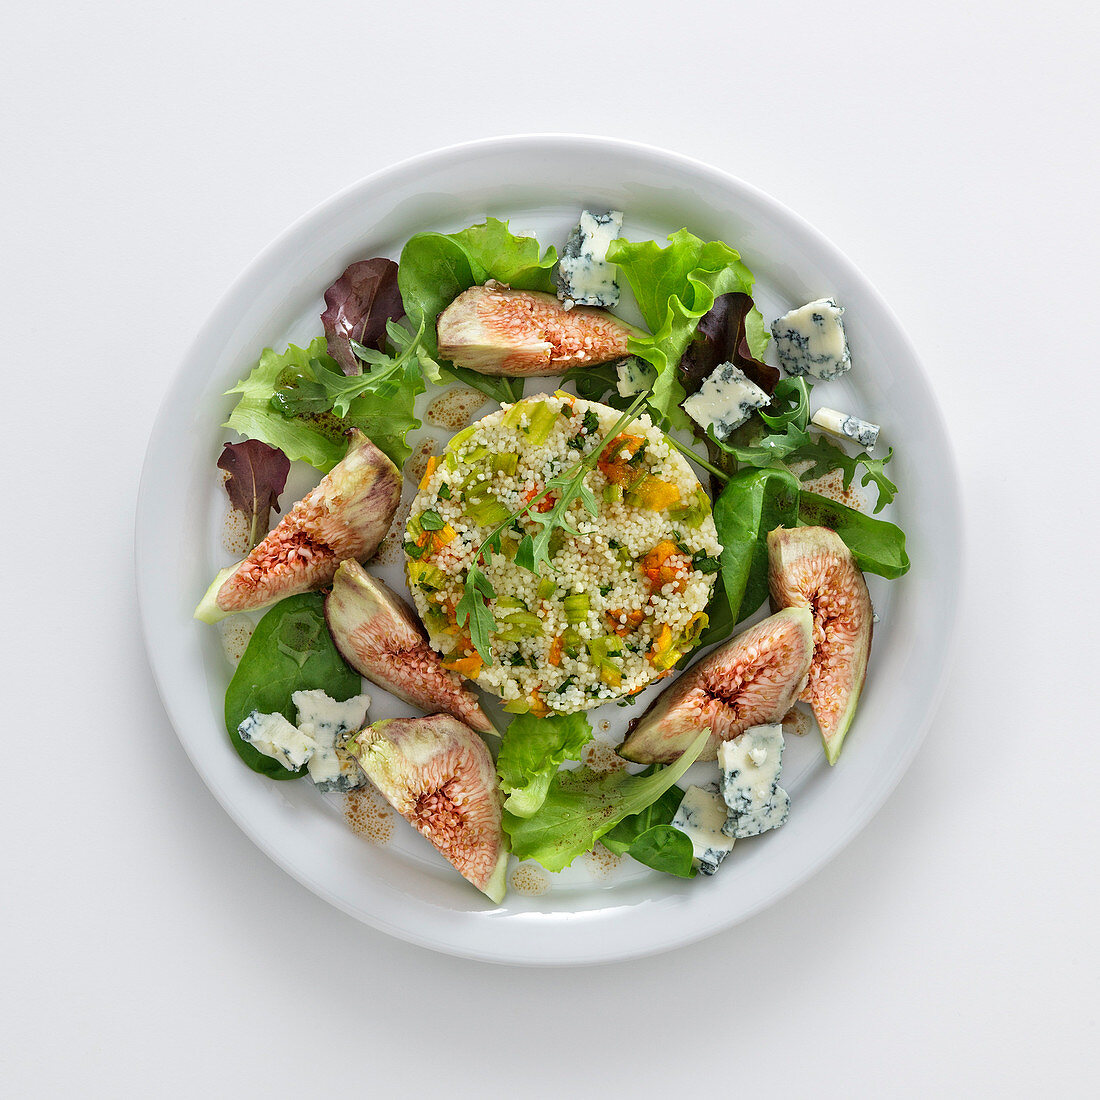 Couscous with zucchini blossoms, figs, gorgonzola and salad